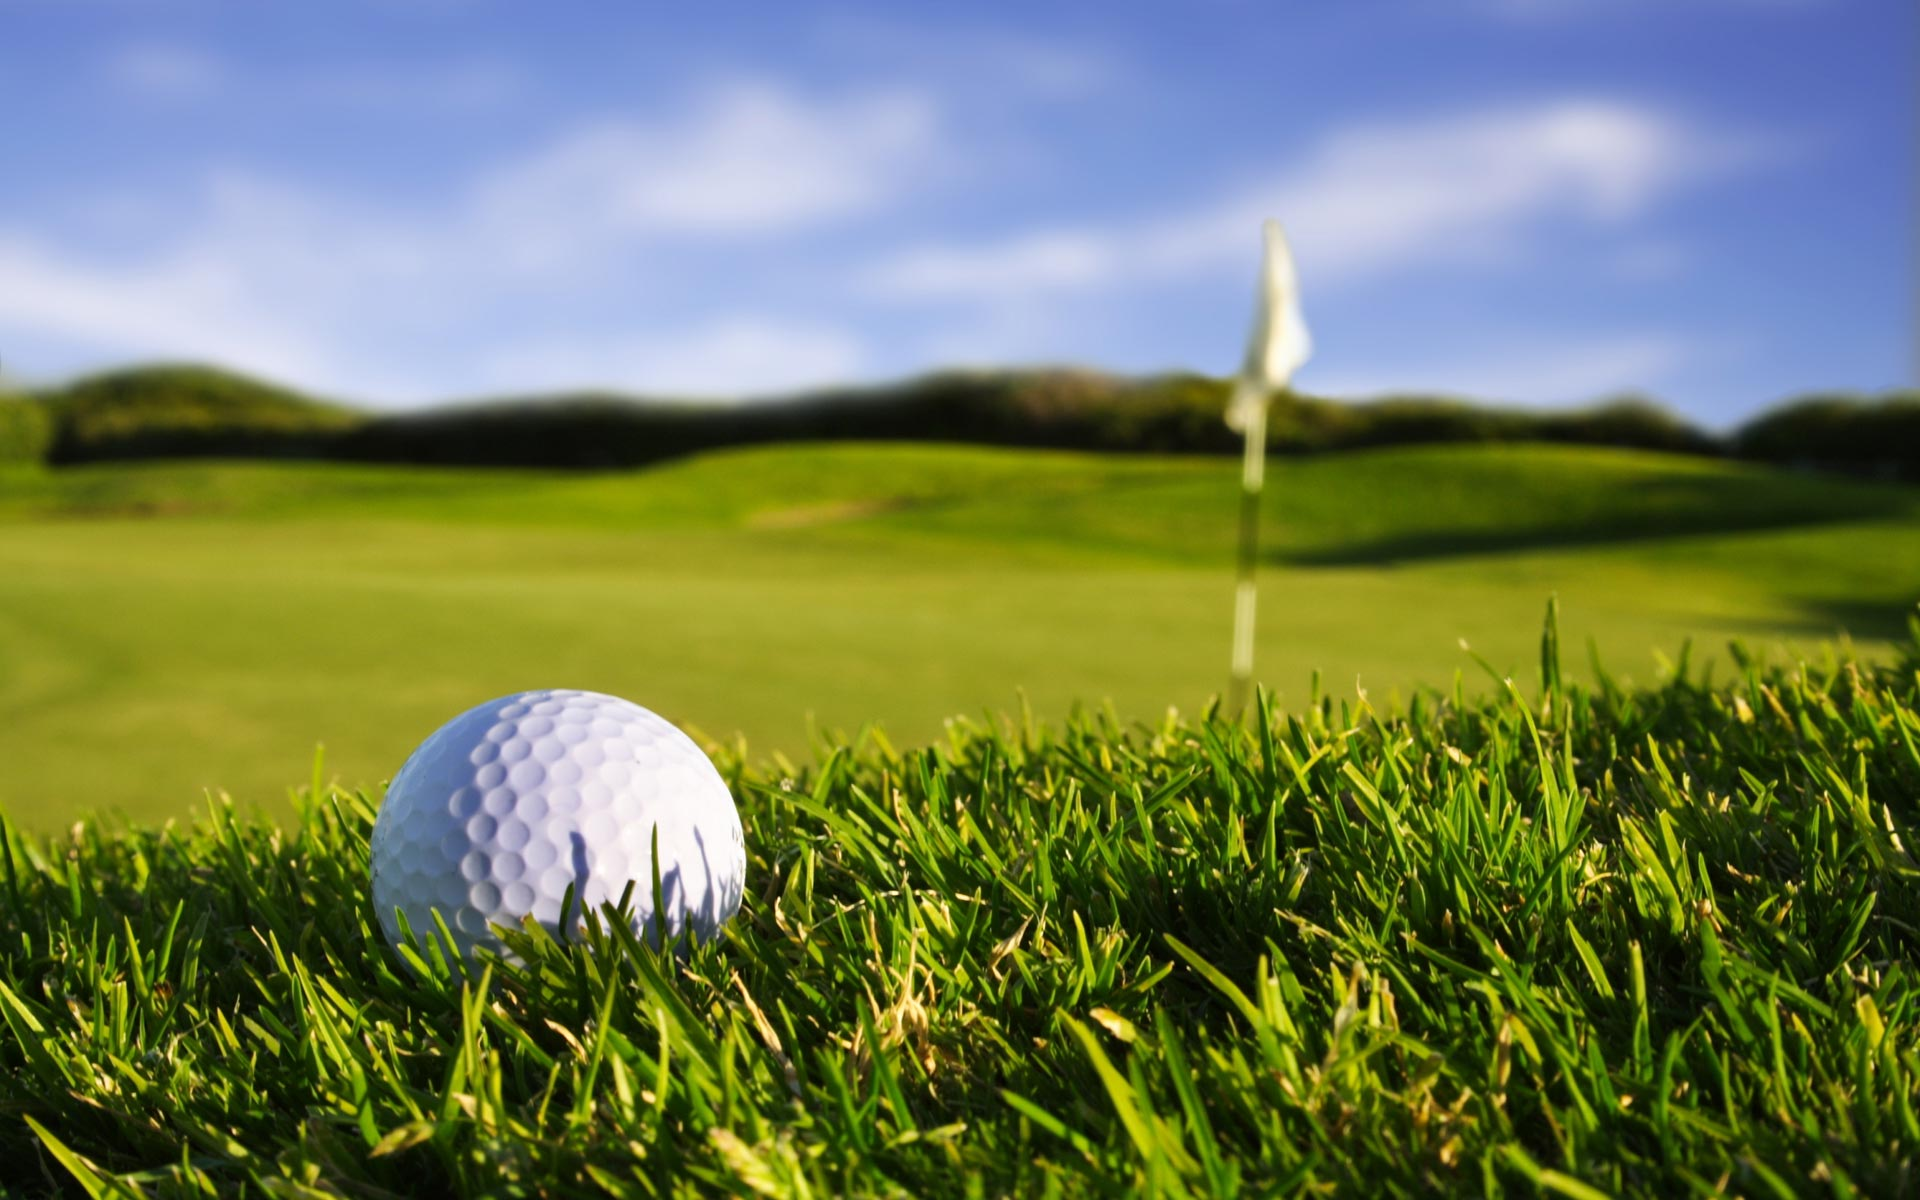 Golf Course Wallpaper Widescreen 2315 Hd Wallpapers in Sports 1920x1200